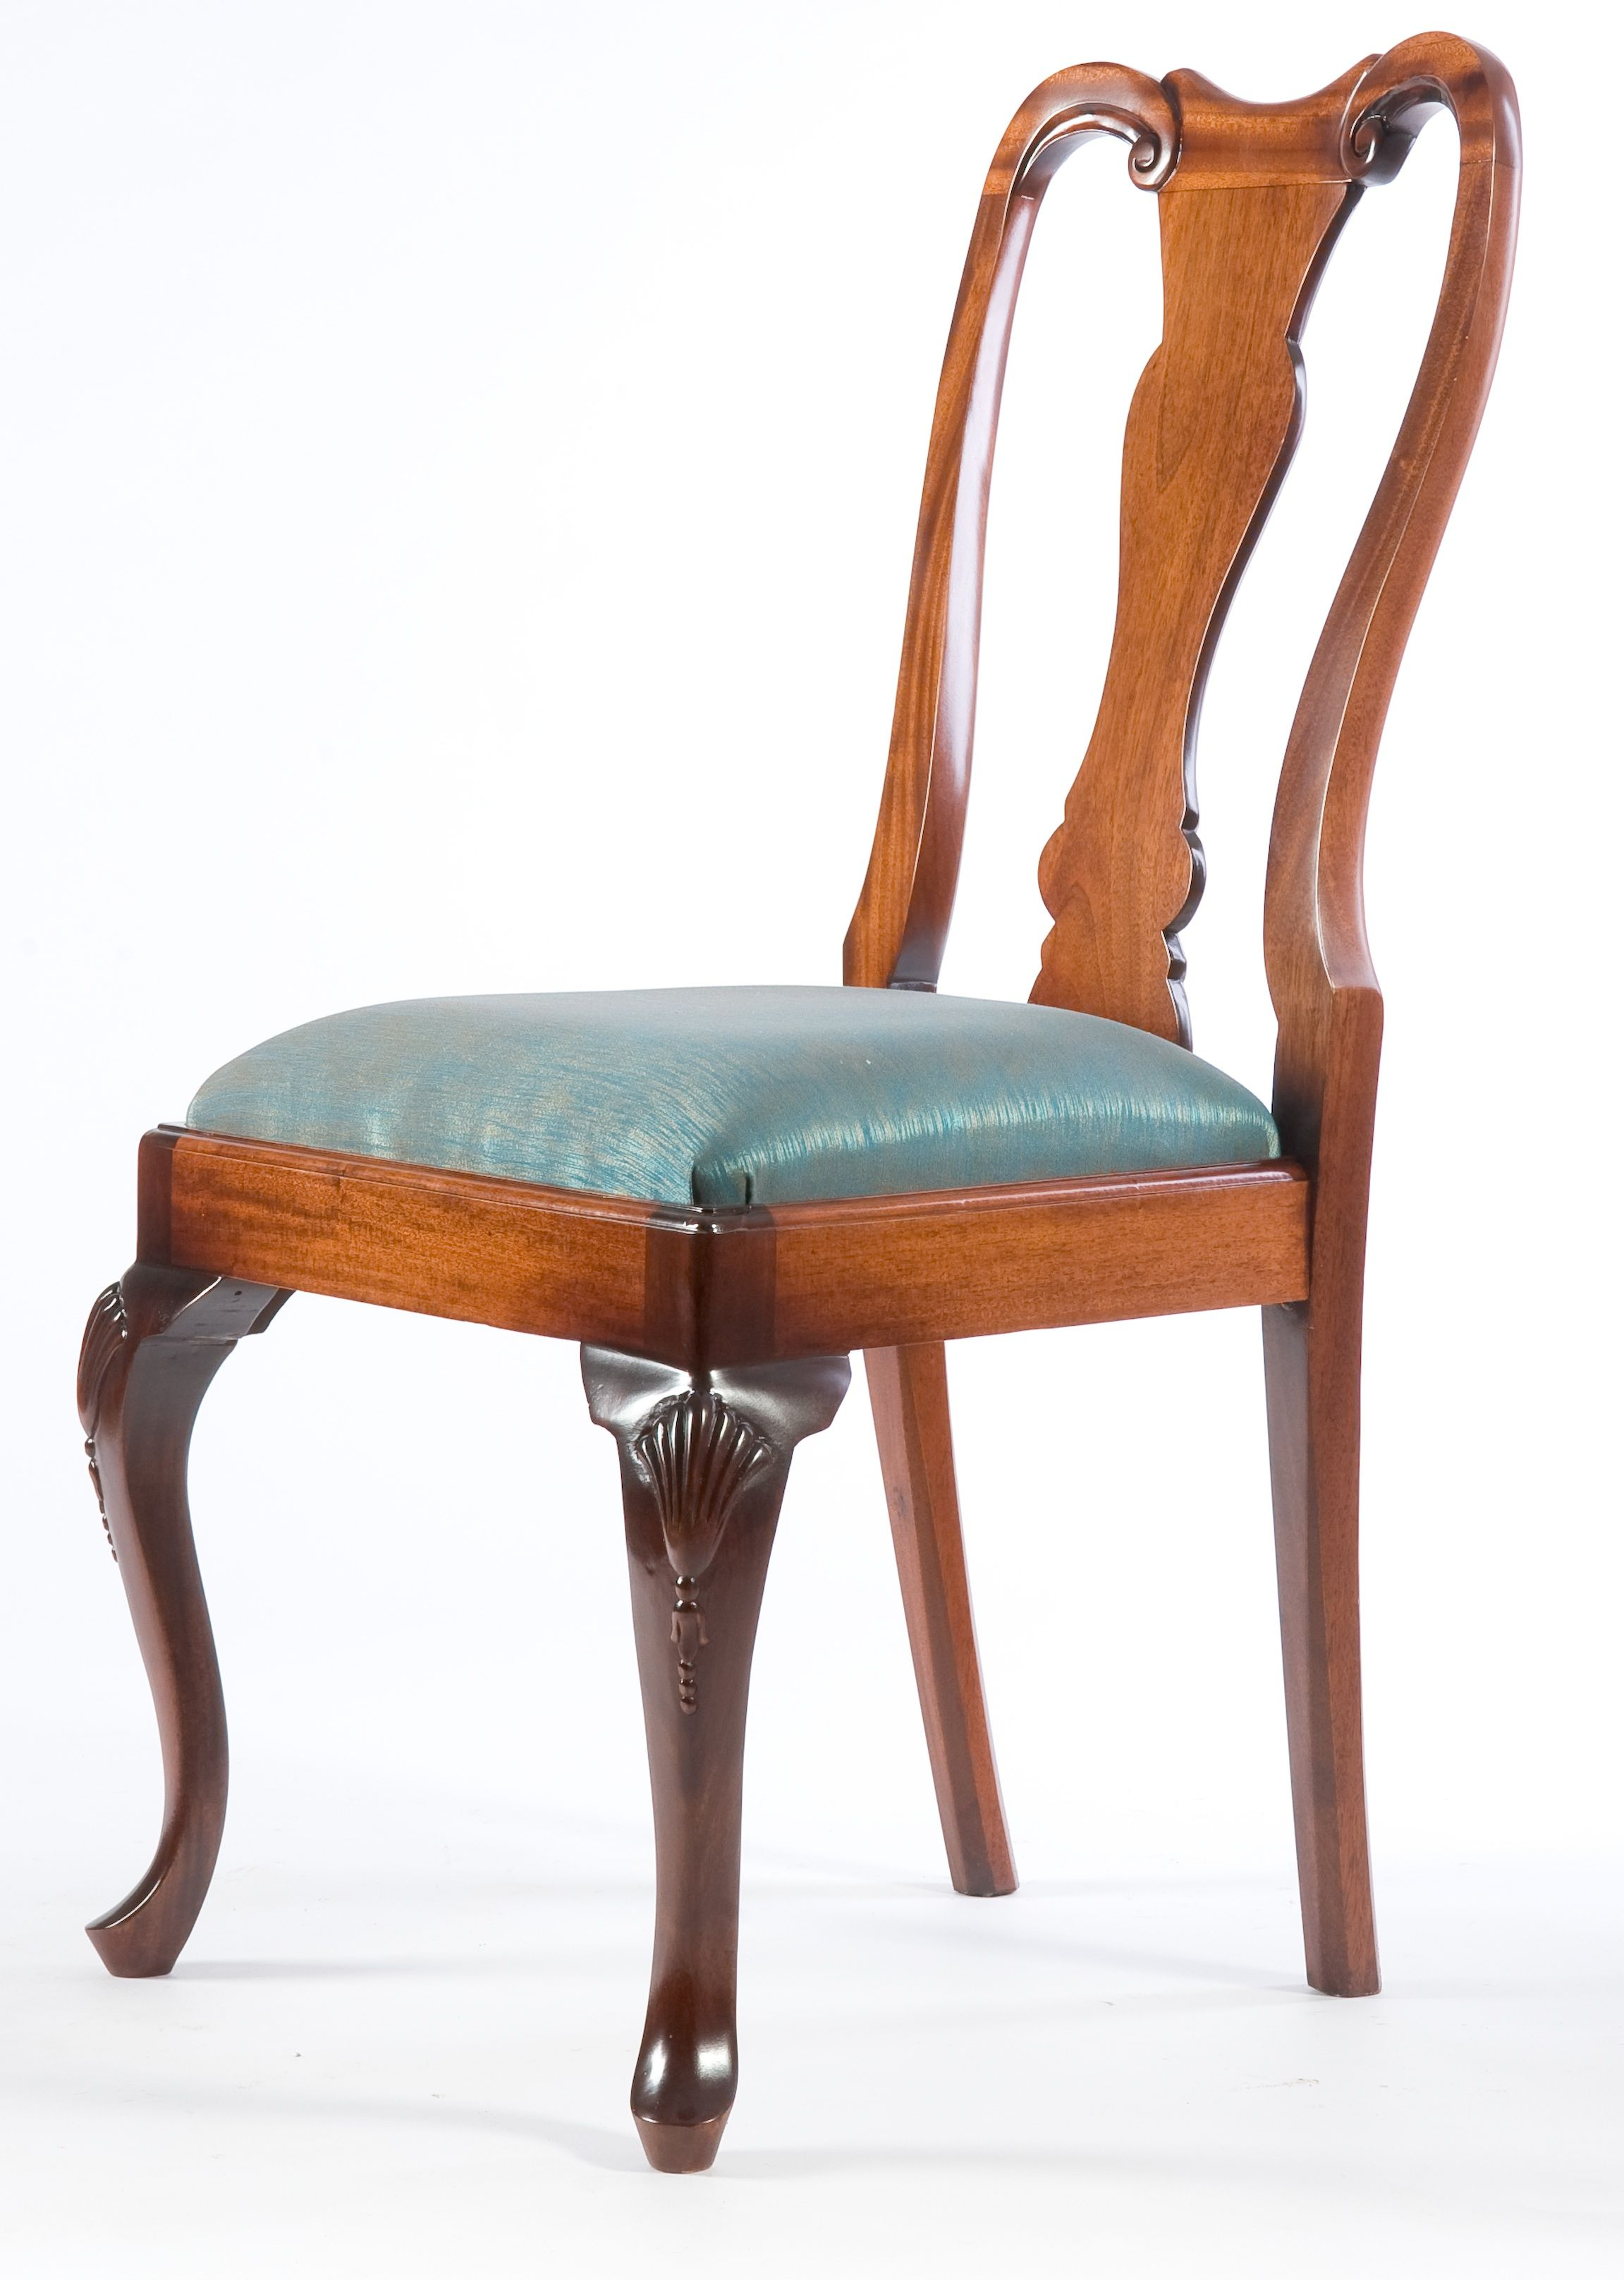 Queen Anne Dining Chair A Simple And Elegant Chair Which Was